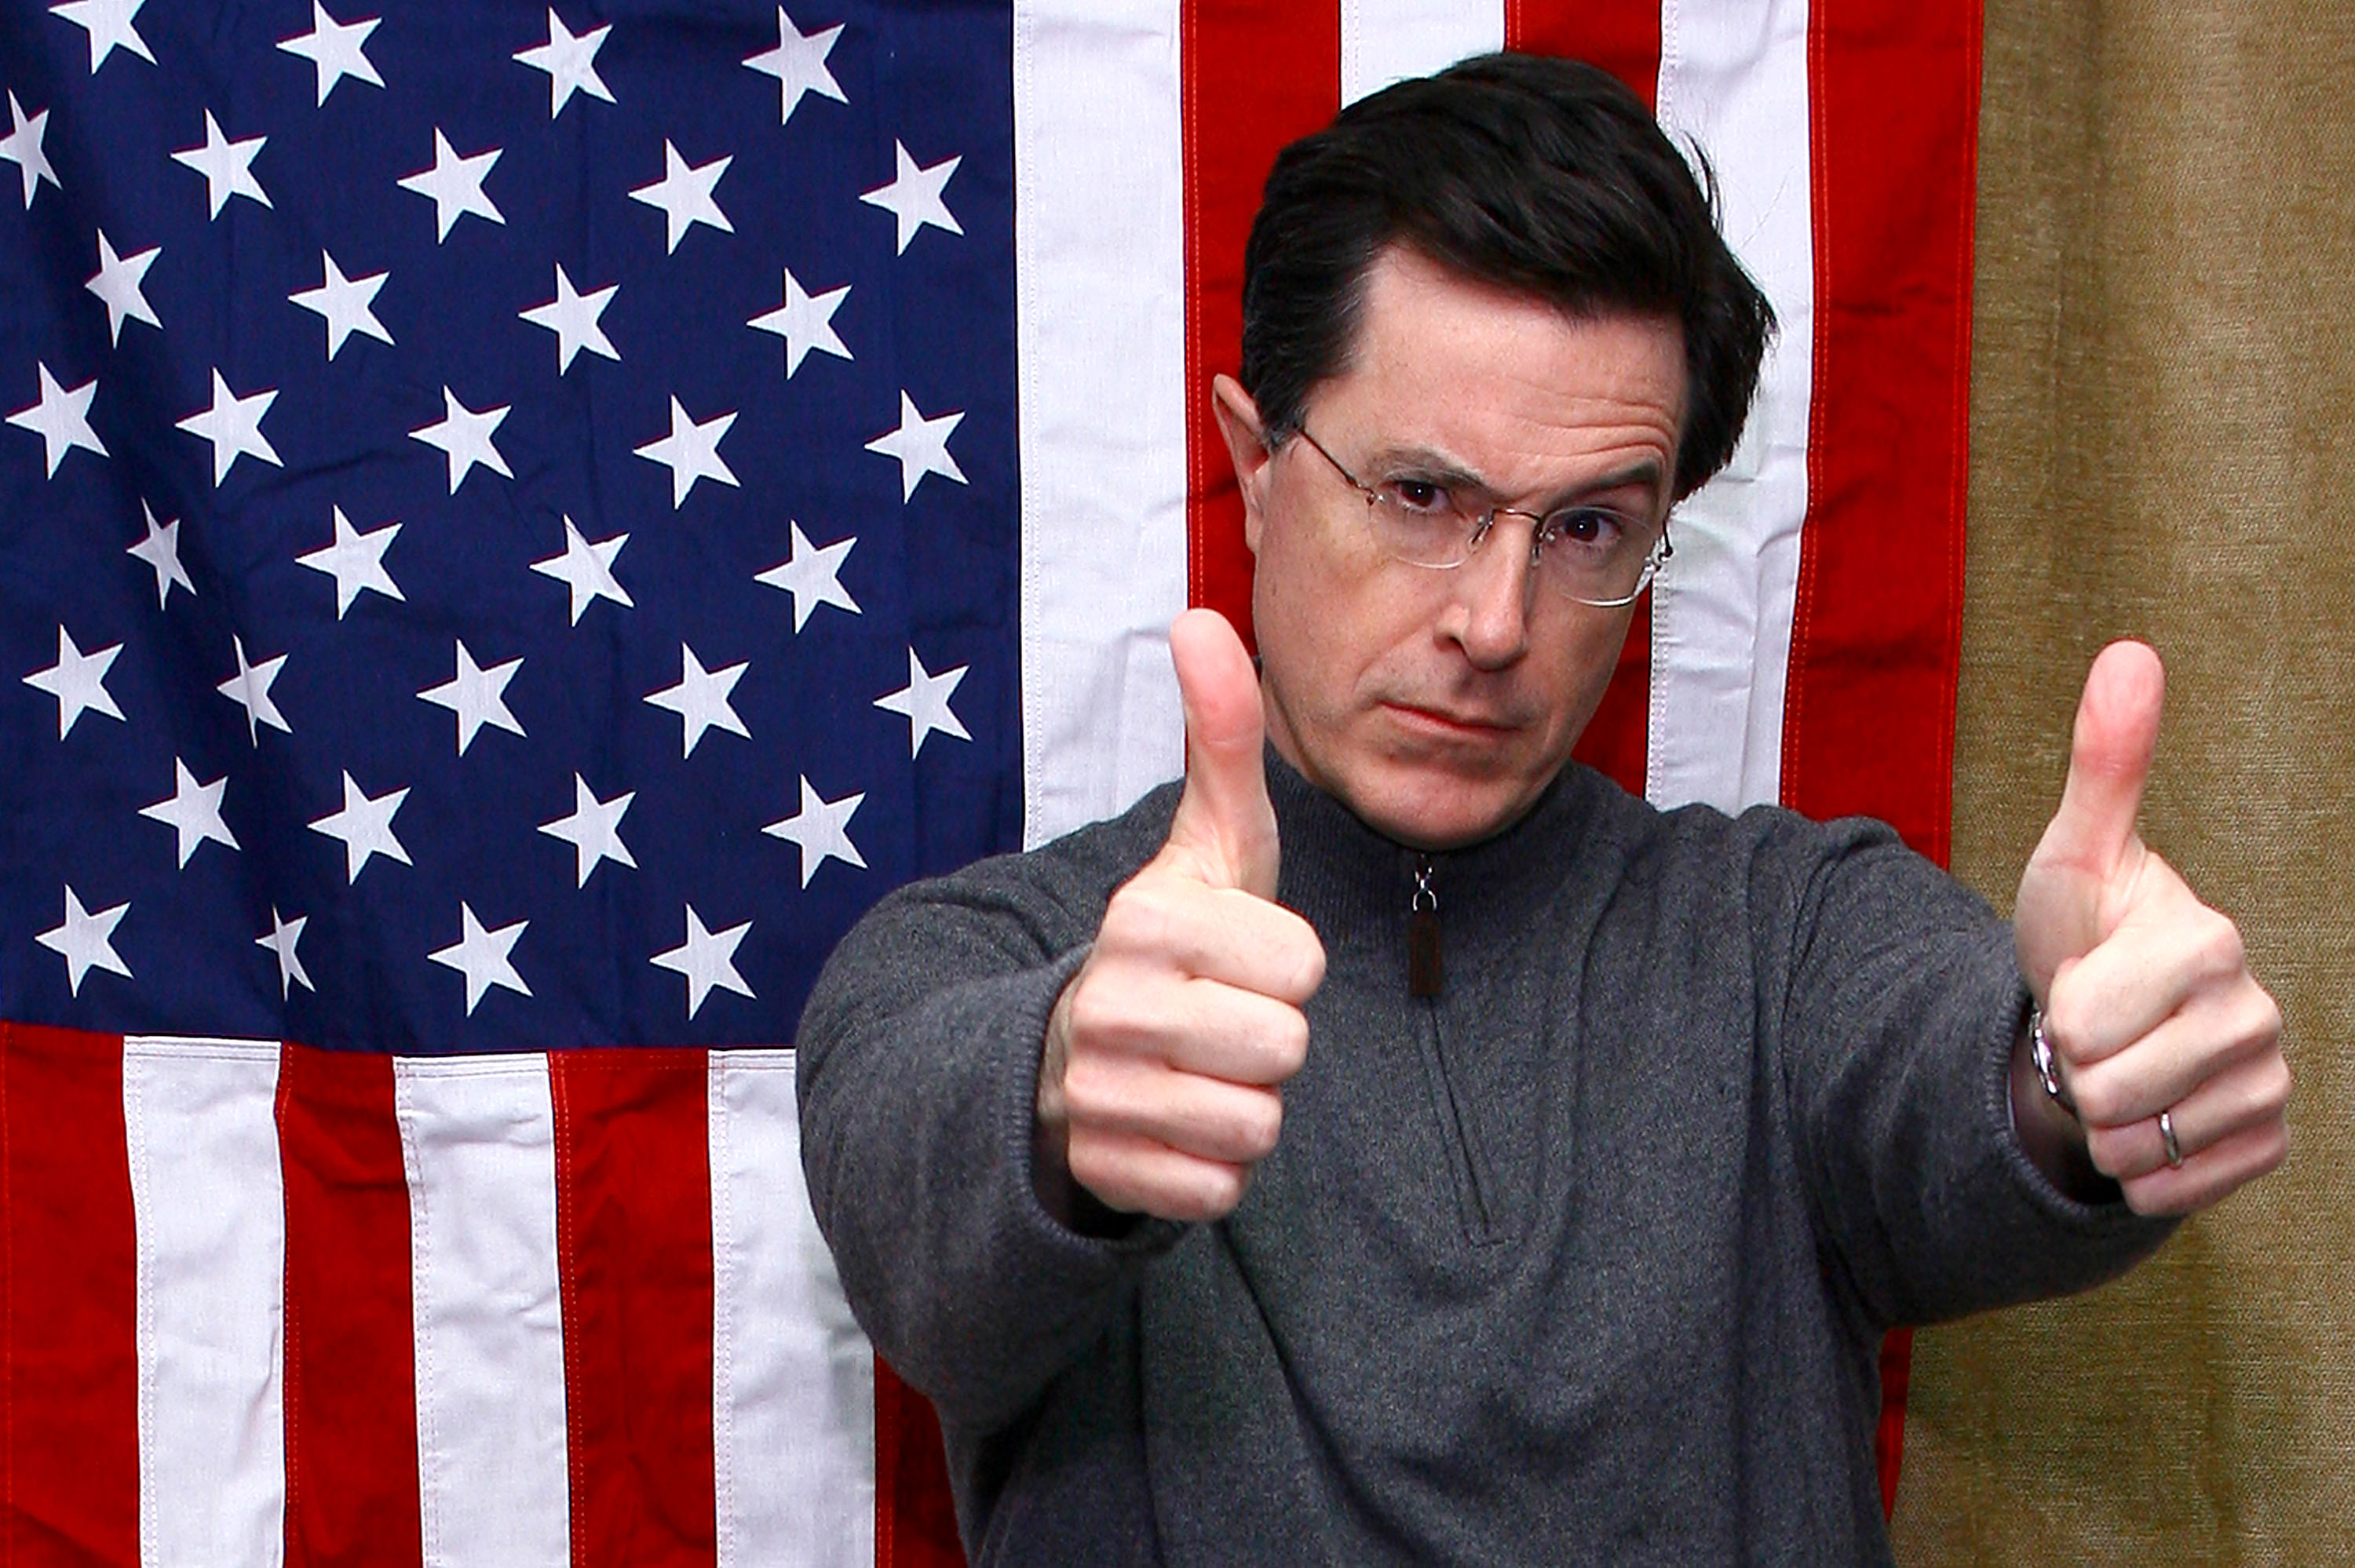 Comedian Stephen Colbert celebrates the launch of his new Ben and Jerry's ice cream flavor, Americone Dream, in 2007.